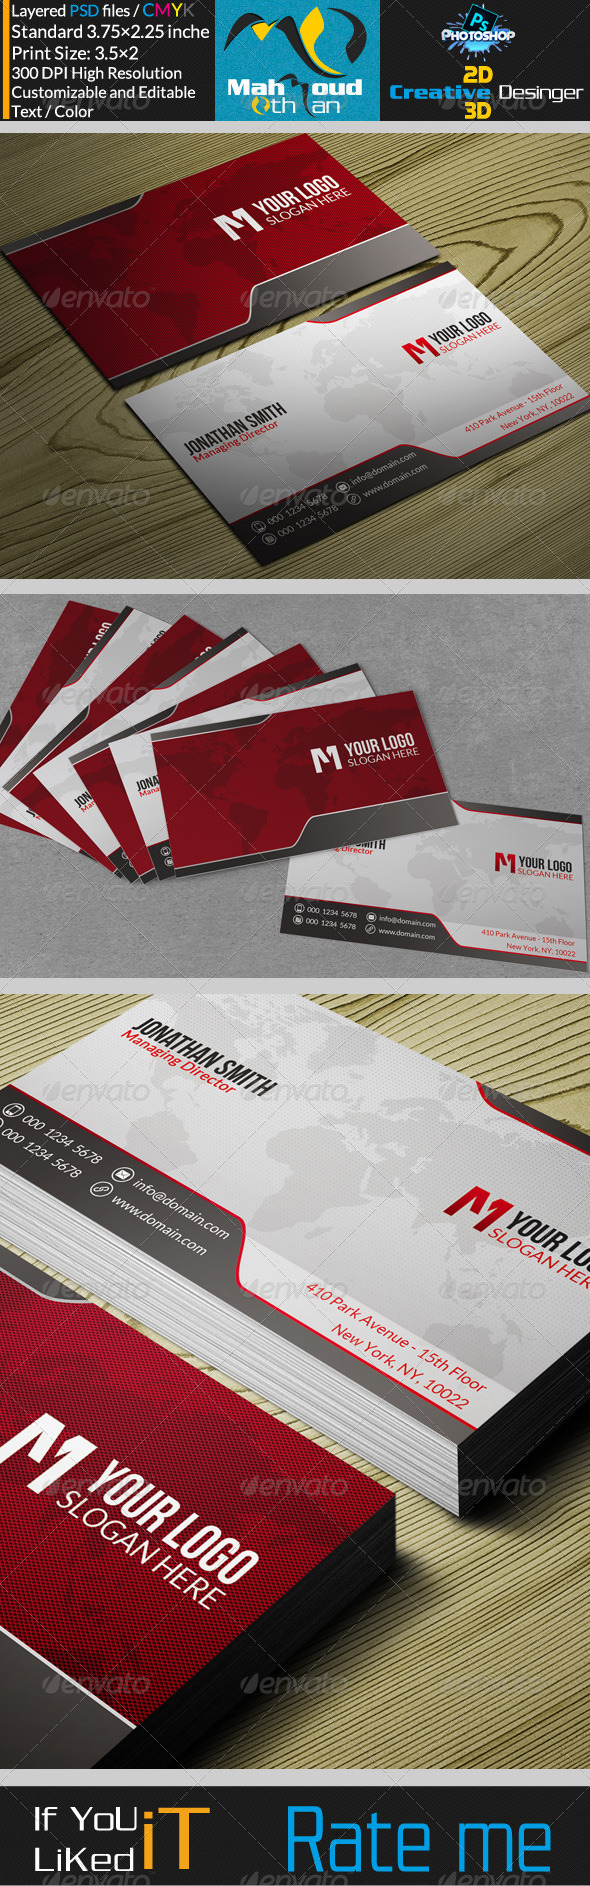 GraphicRiver Corportae Business Card V19 7499293